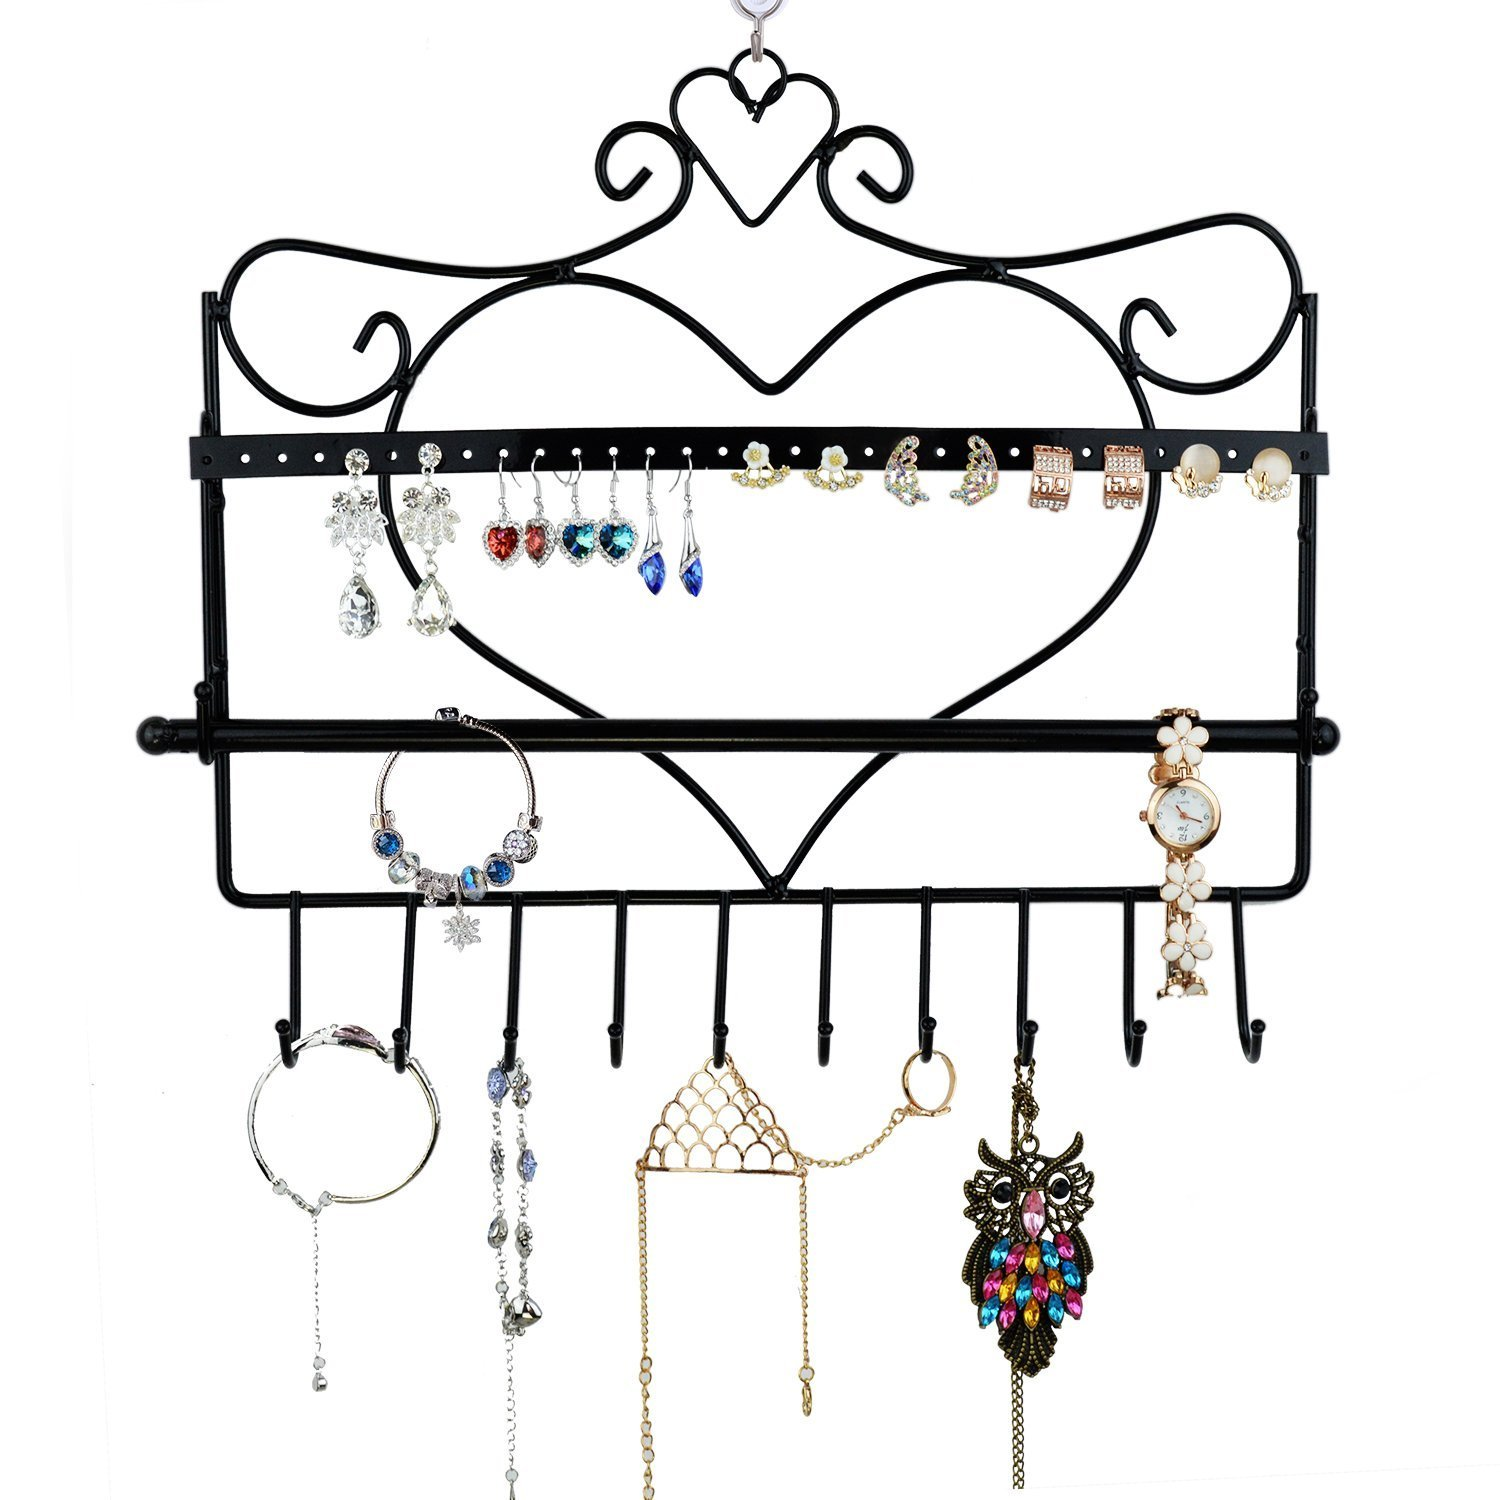 Home-Neat Vintage Wall Mount Heart Shape Jewelry Organizer Hanging Earring Holder Necklace Jewelry Display Stand Rack Black